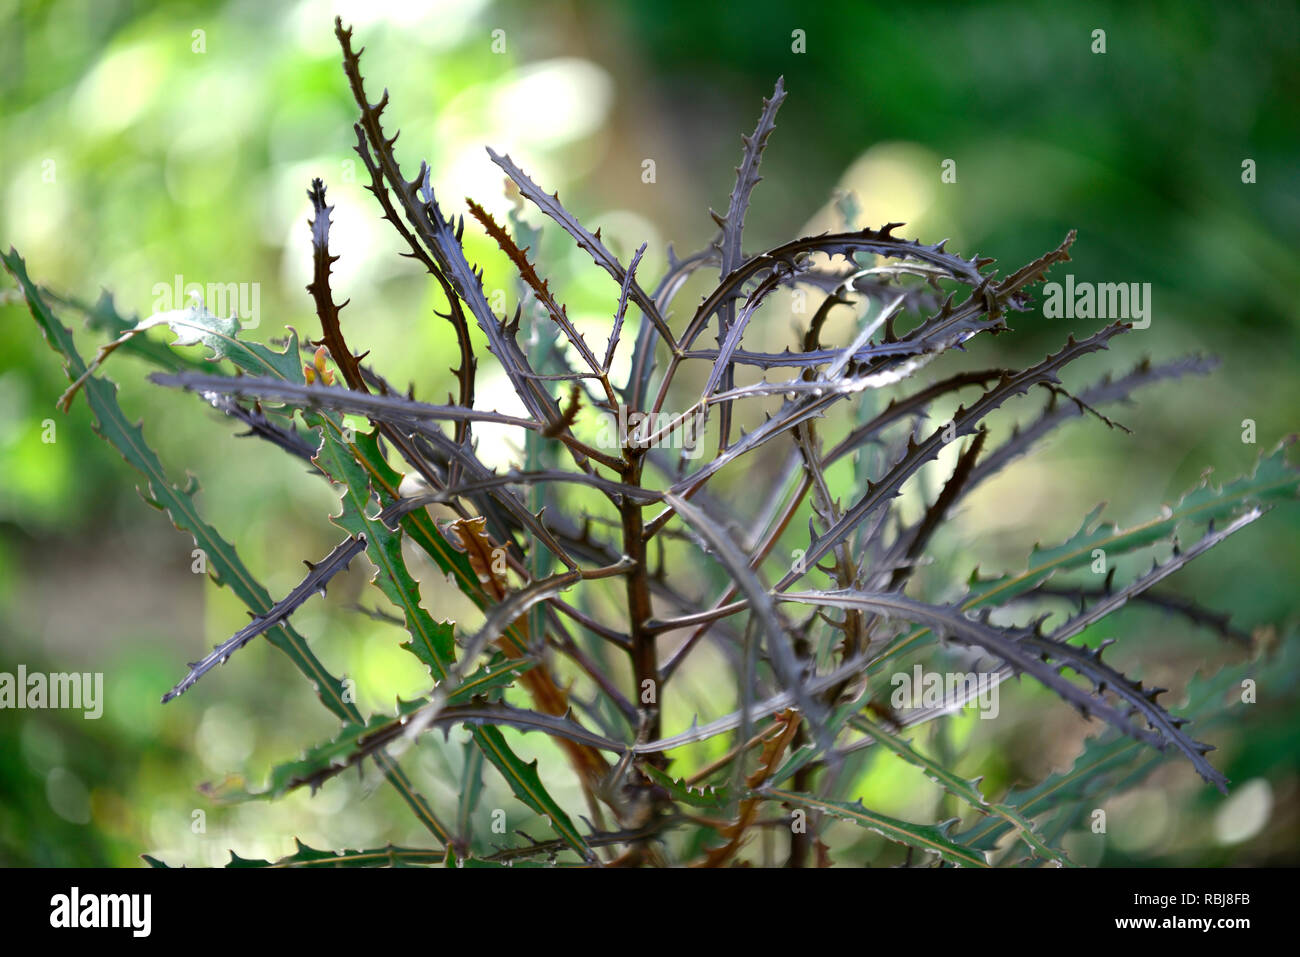 Pseudopanax chainsaw,thick leathery leaves,evergreen,chainsaw blade,mimic,resemble,tree,trees,RM Floral - Stock Image